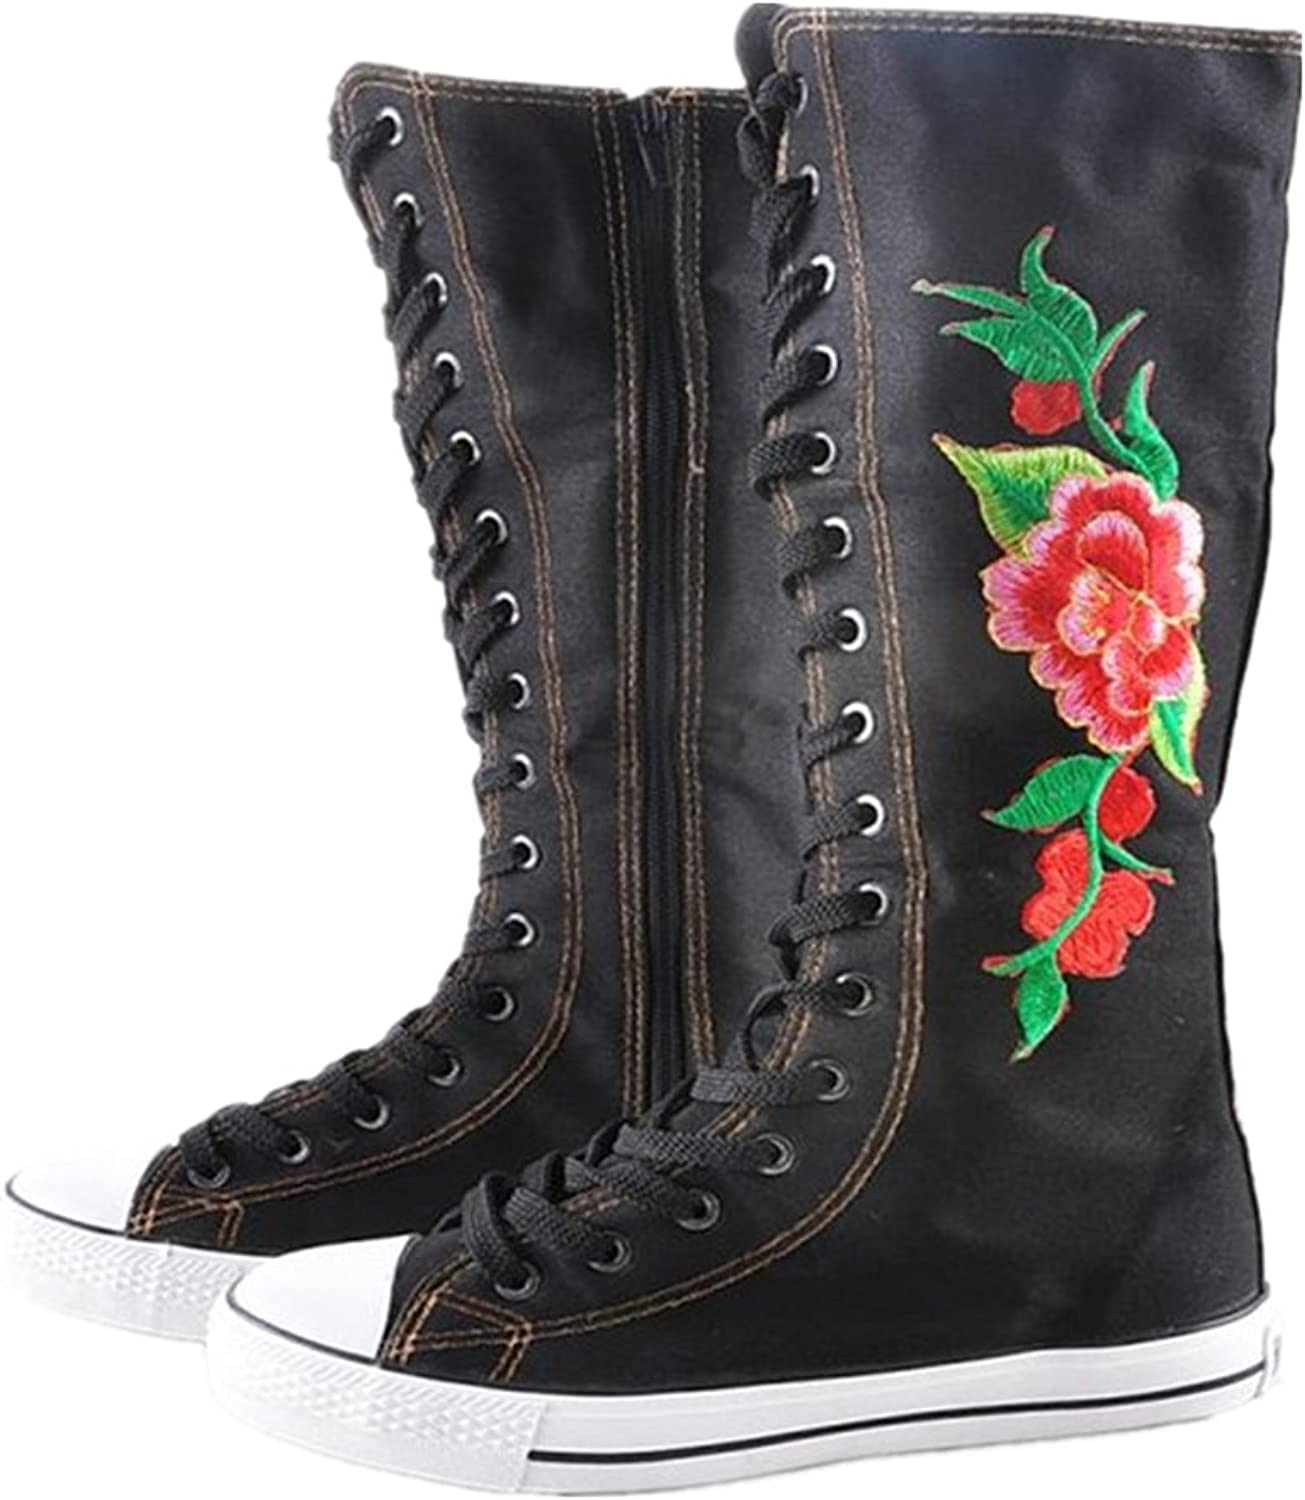 AGoGo Floral Embroidered Women's Dance Sneakers Punk Knee High Lace Ups Canvas Boots